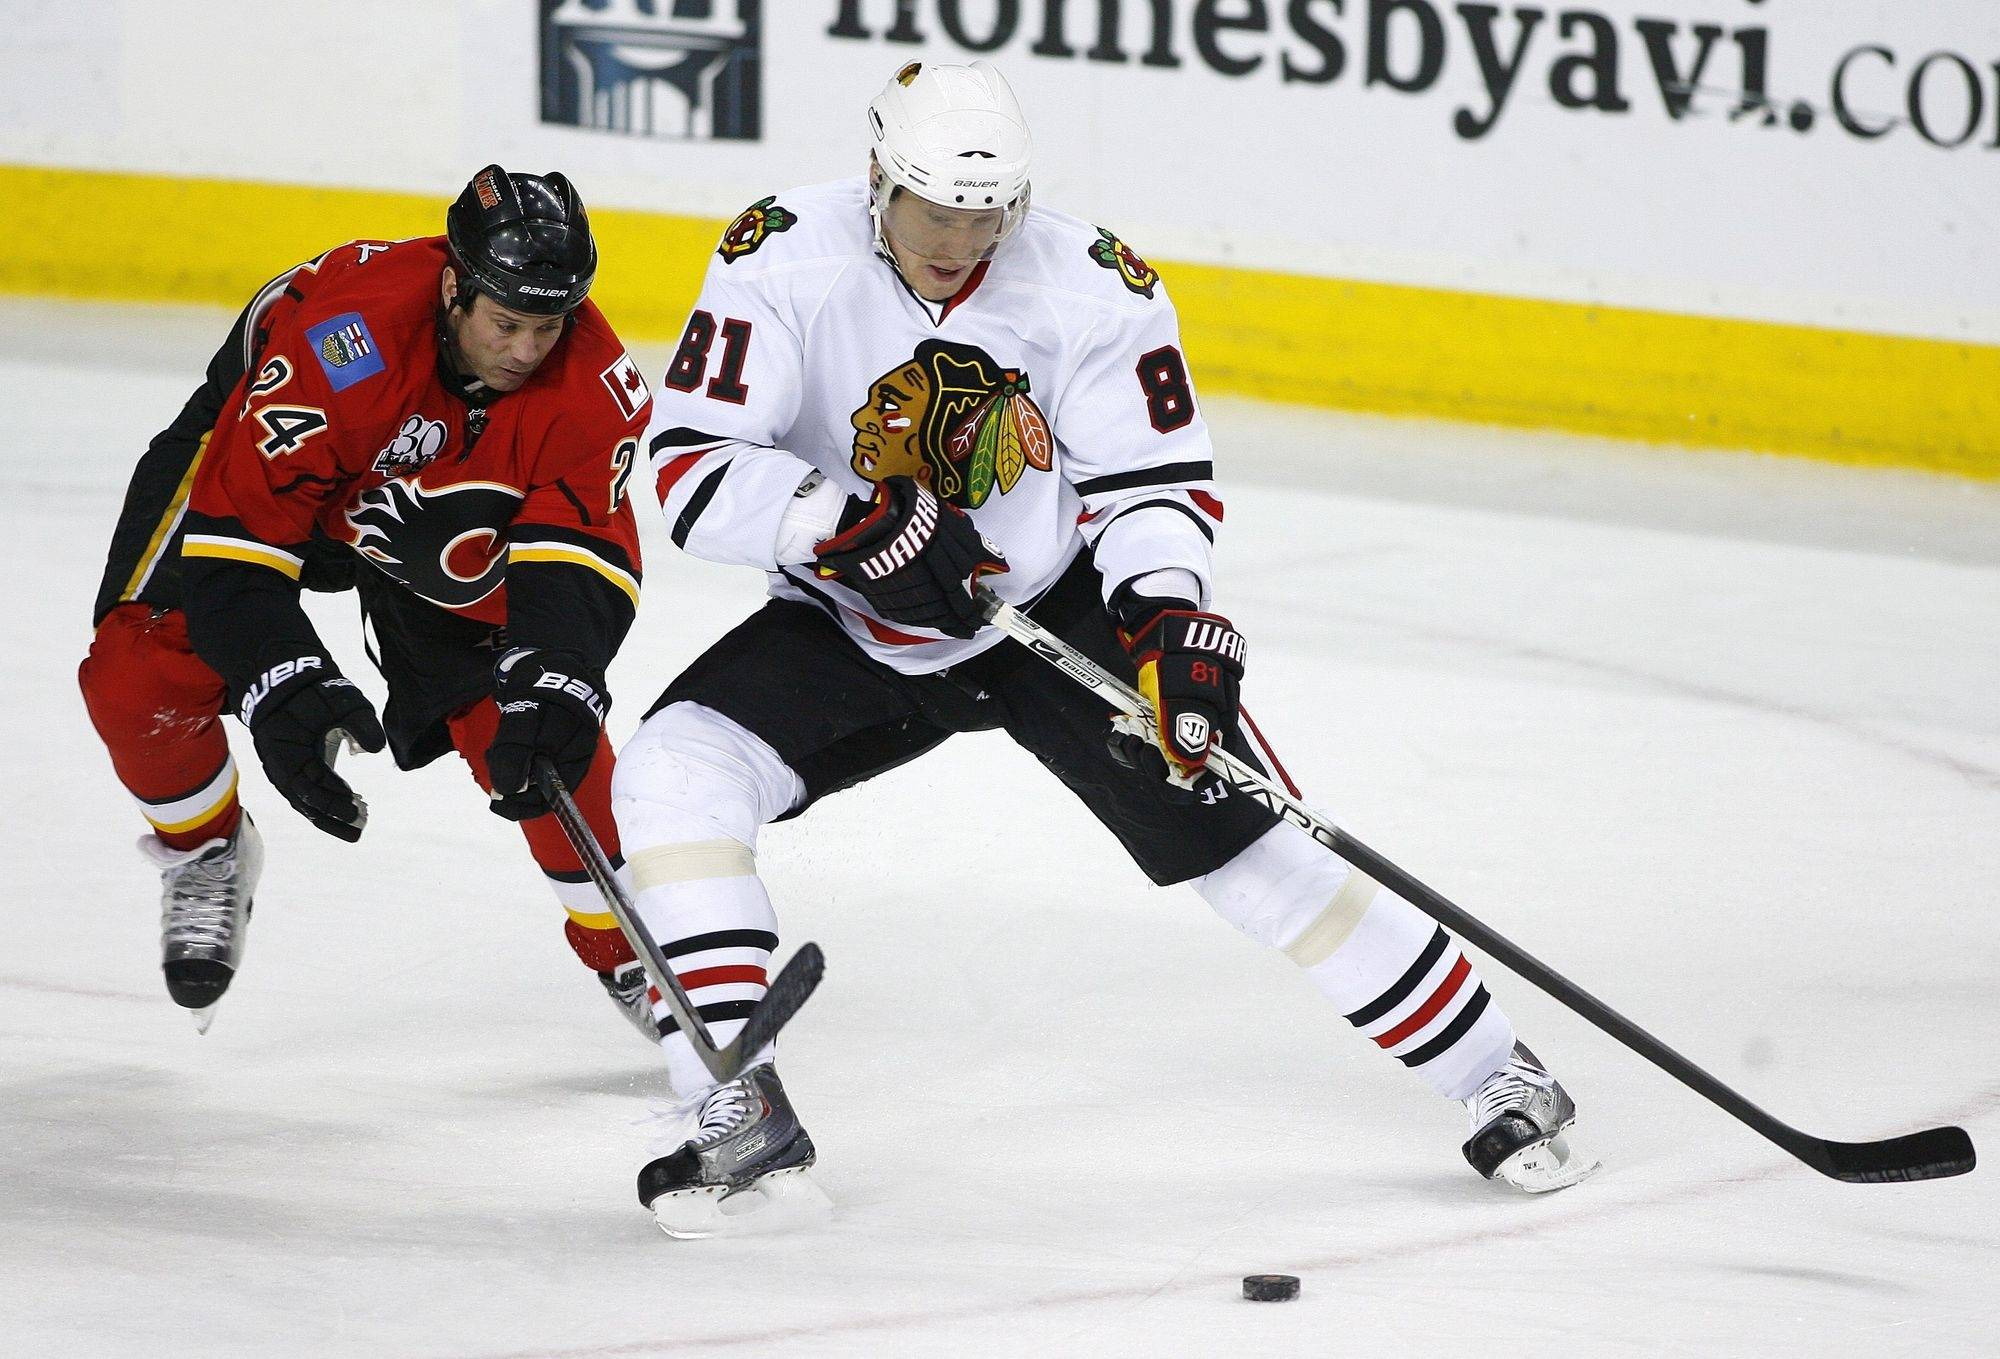 Through 50 games with the Blackhawks, Marian Hossa collected 22 goals and 22 assistsm not quite the dazzling numbers expects for a hockey star earning $7.5 million this season. The Blackhawks, however, like what he brings to the team.